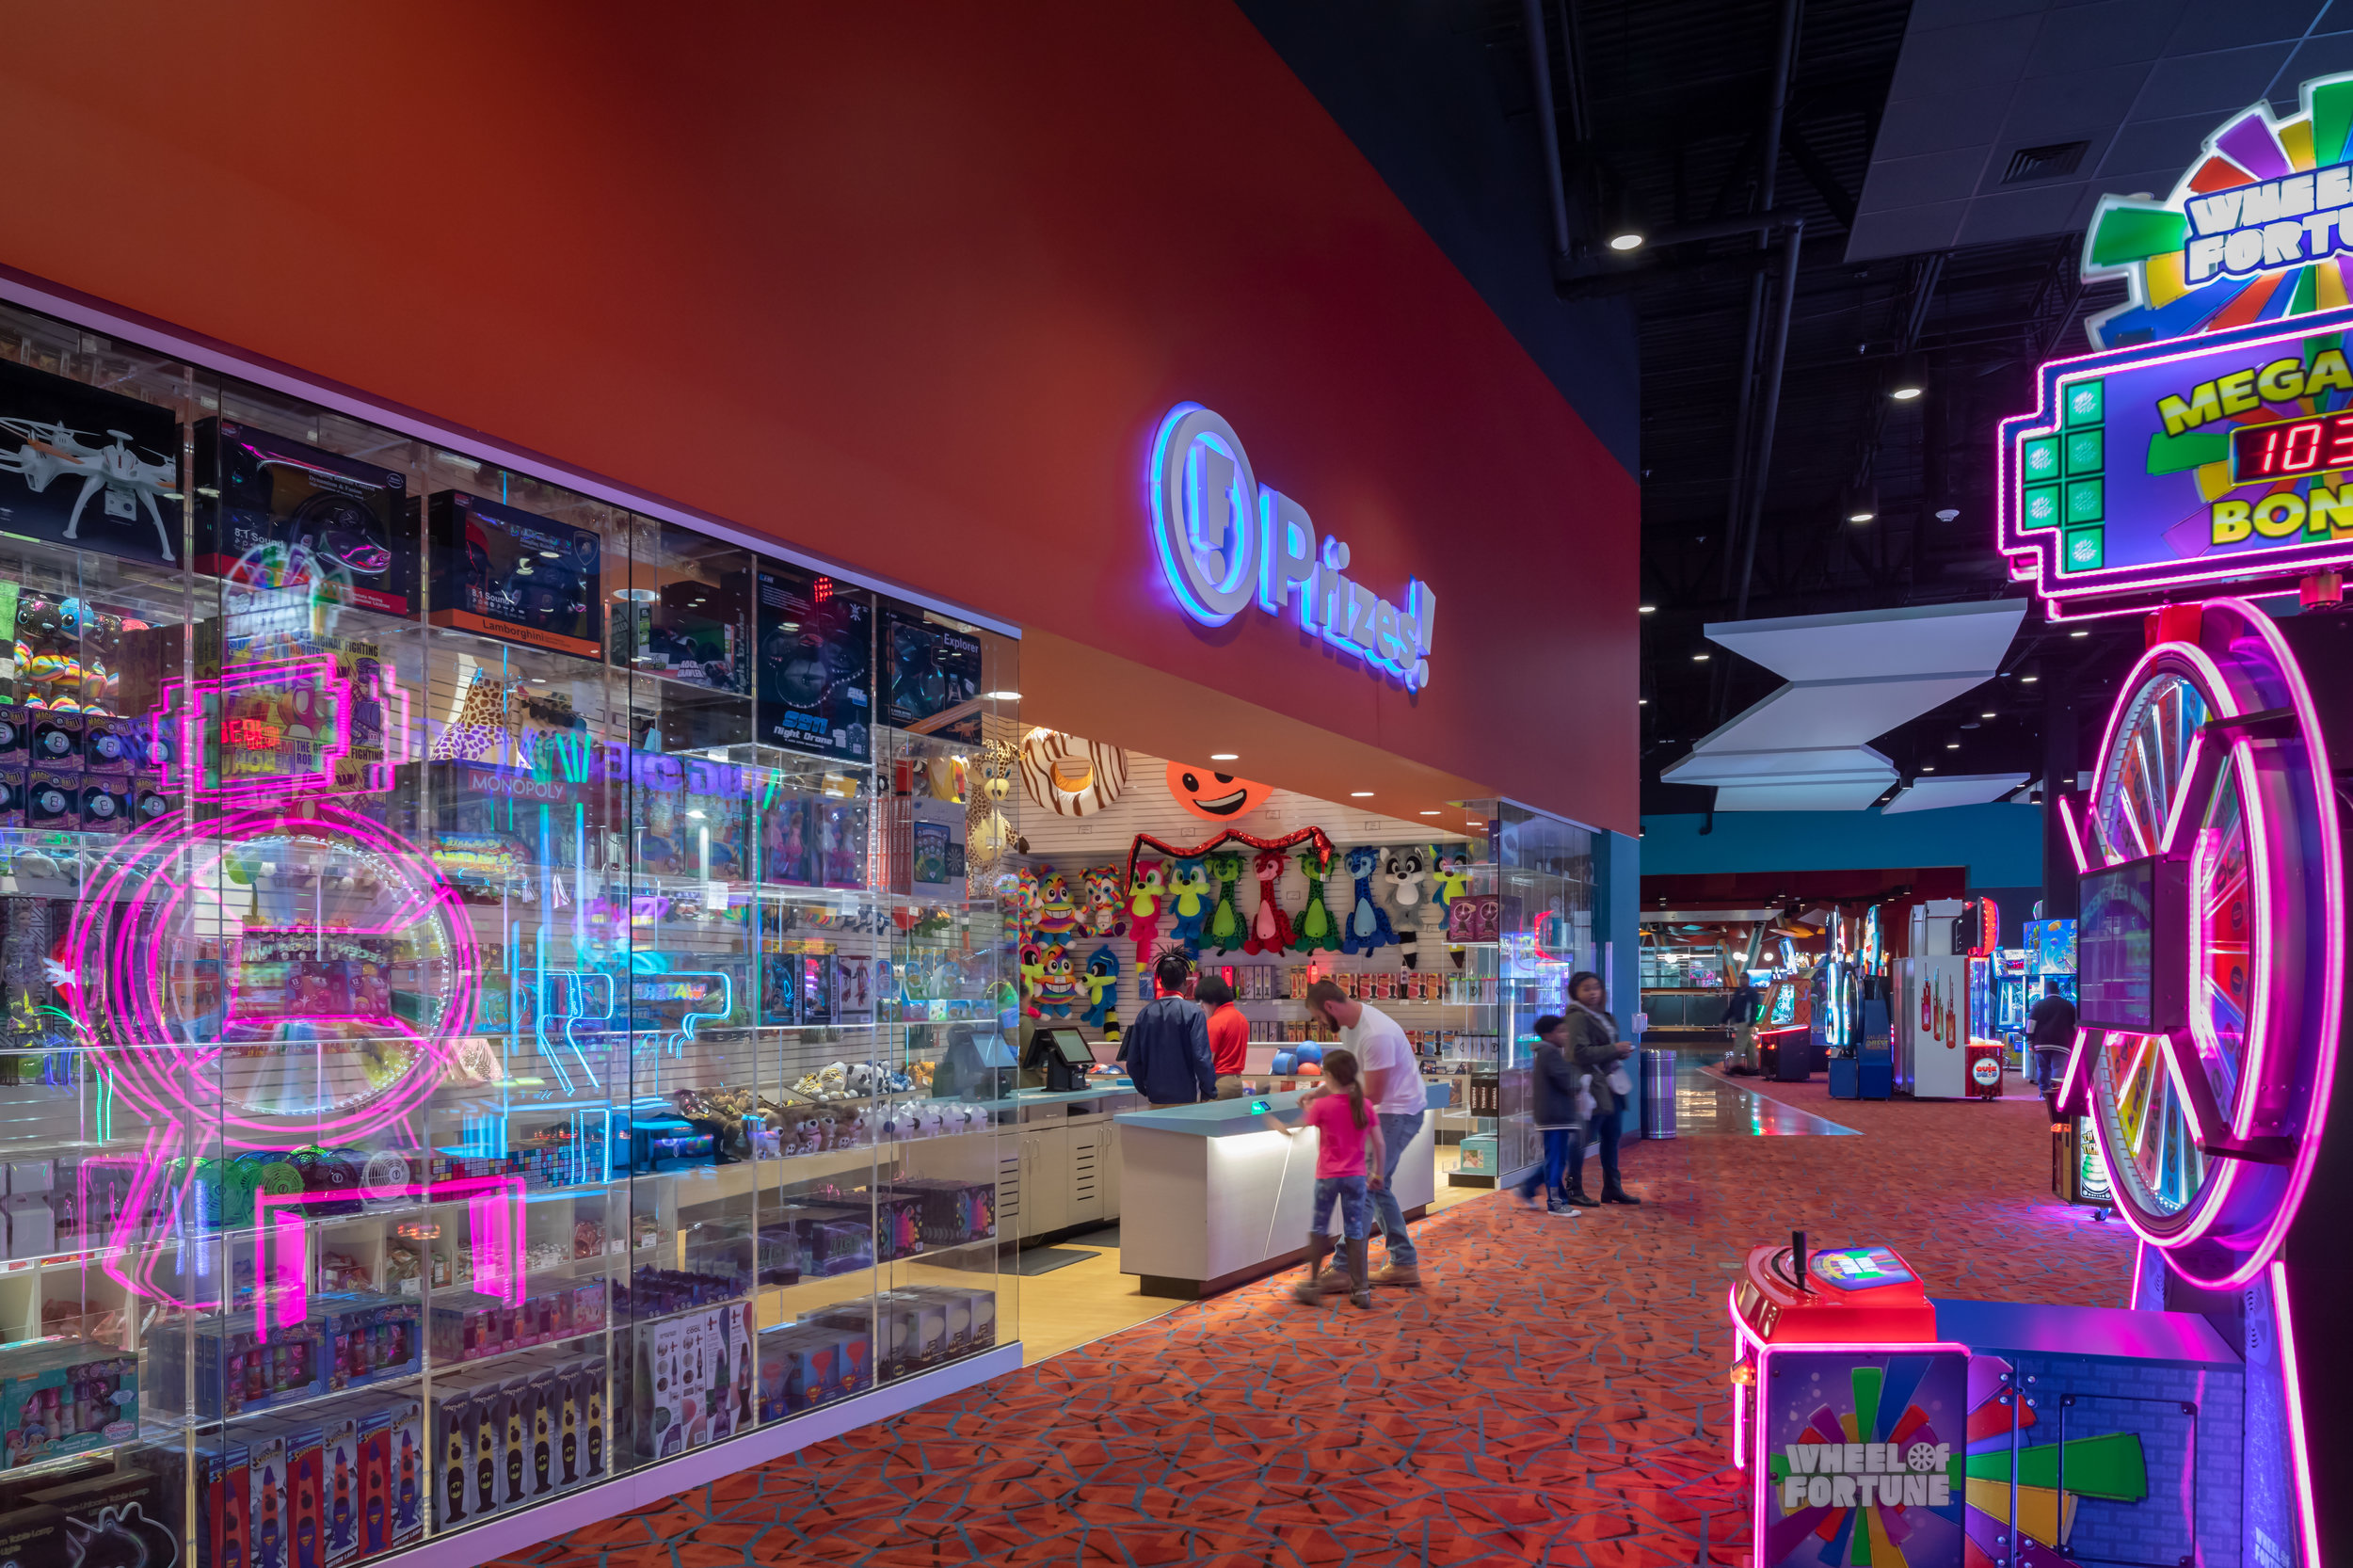 ADW-Entertainment-Frankie's-Fun-Park-Huntersville-NC-Interior-Redemption Entrance.jpg